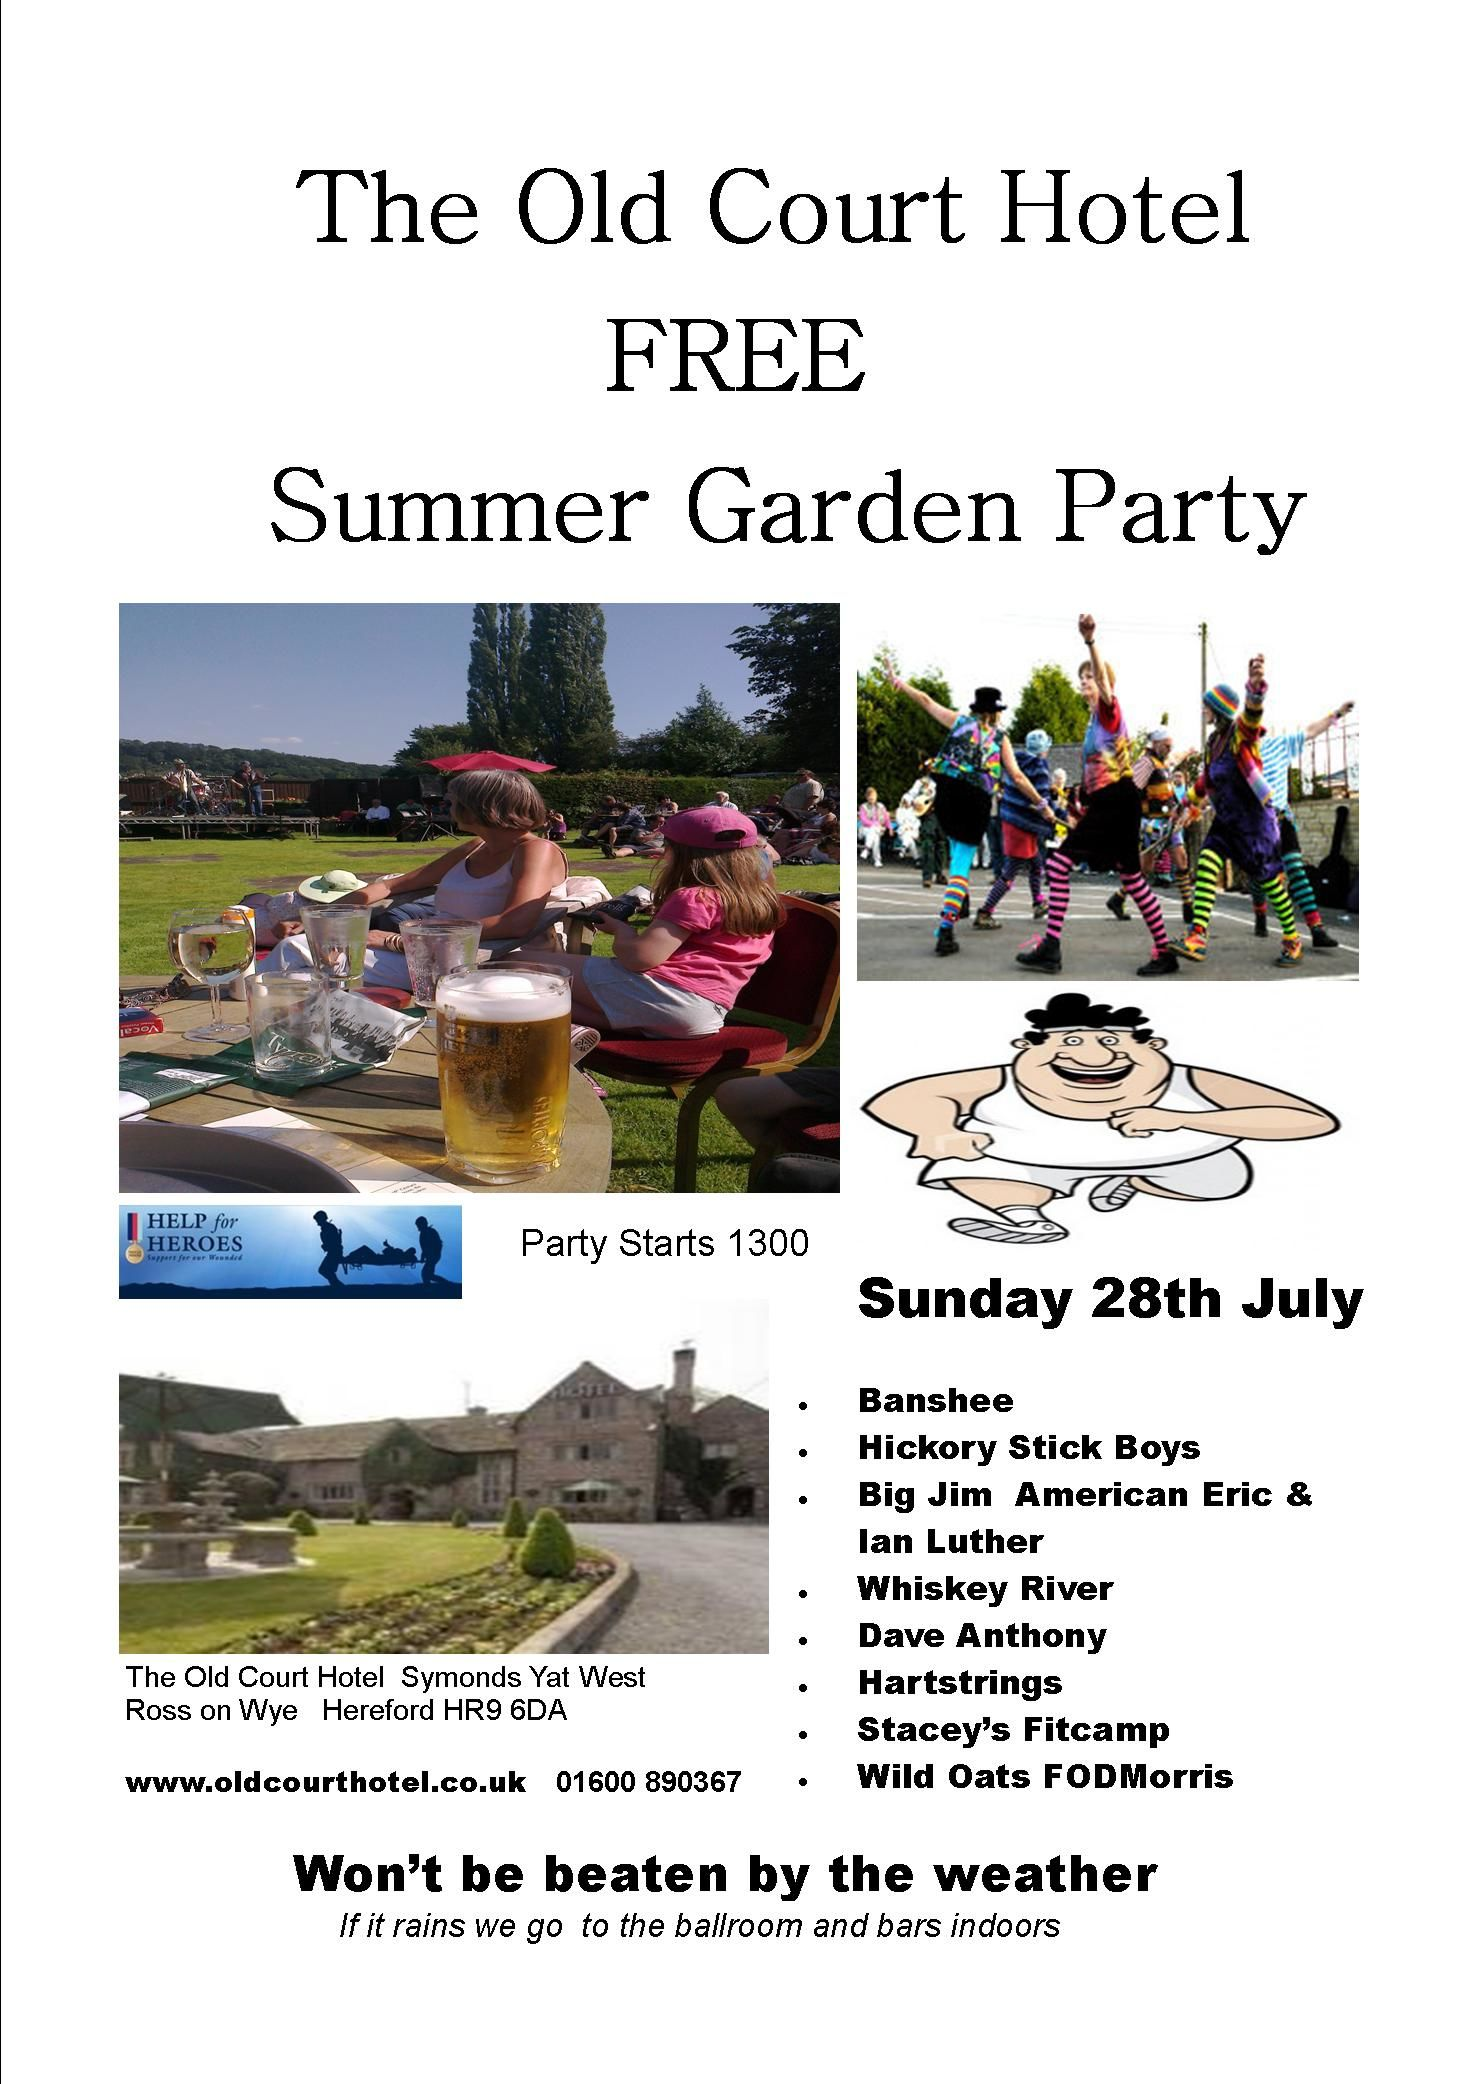 Old Court Hotel Free Summer Garden Party